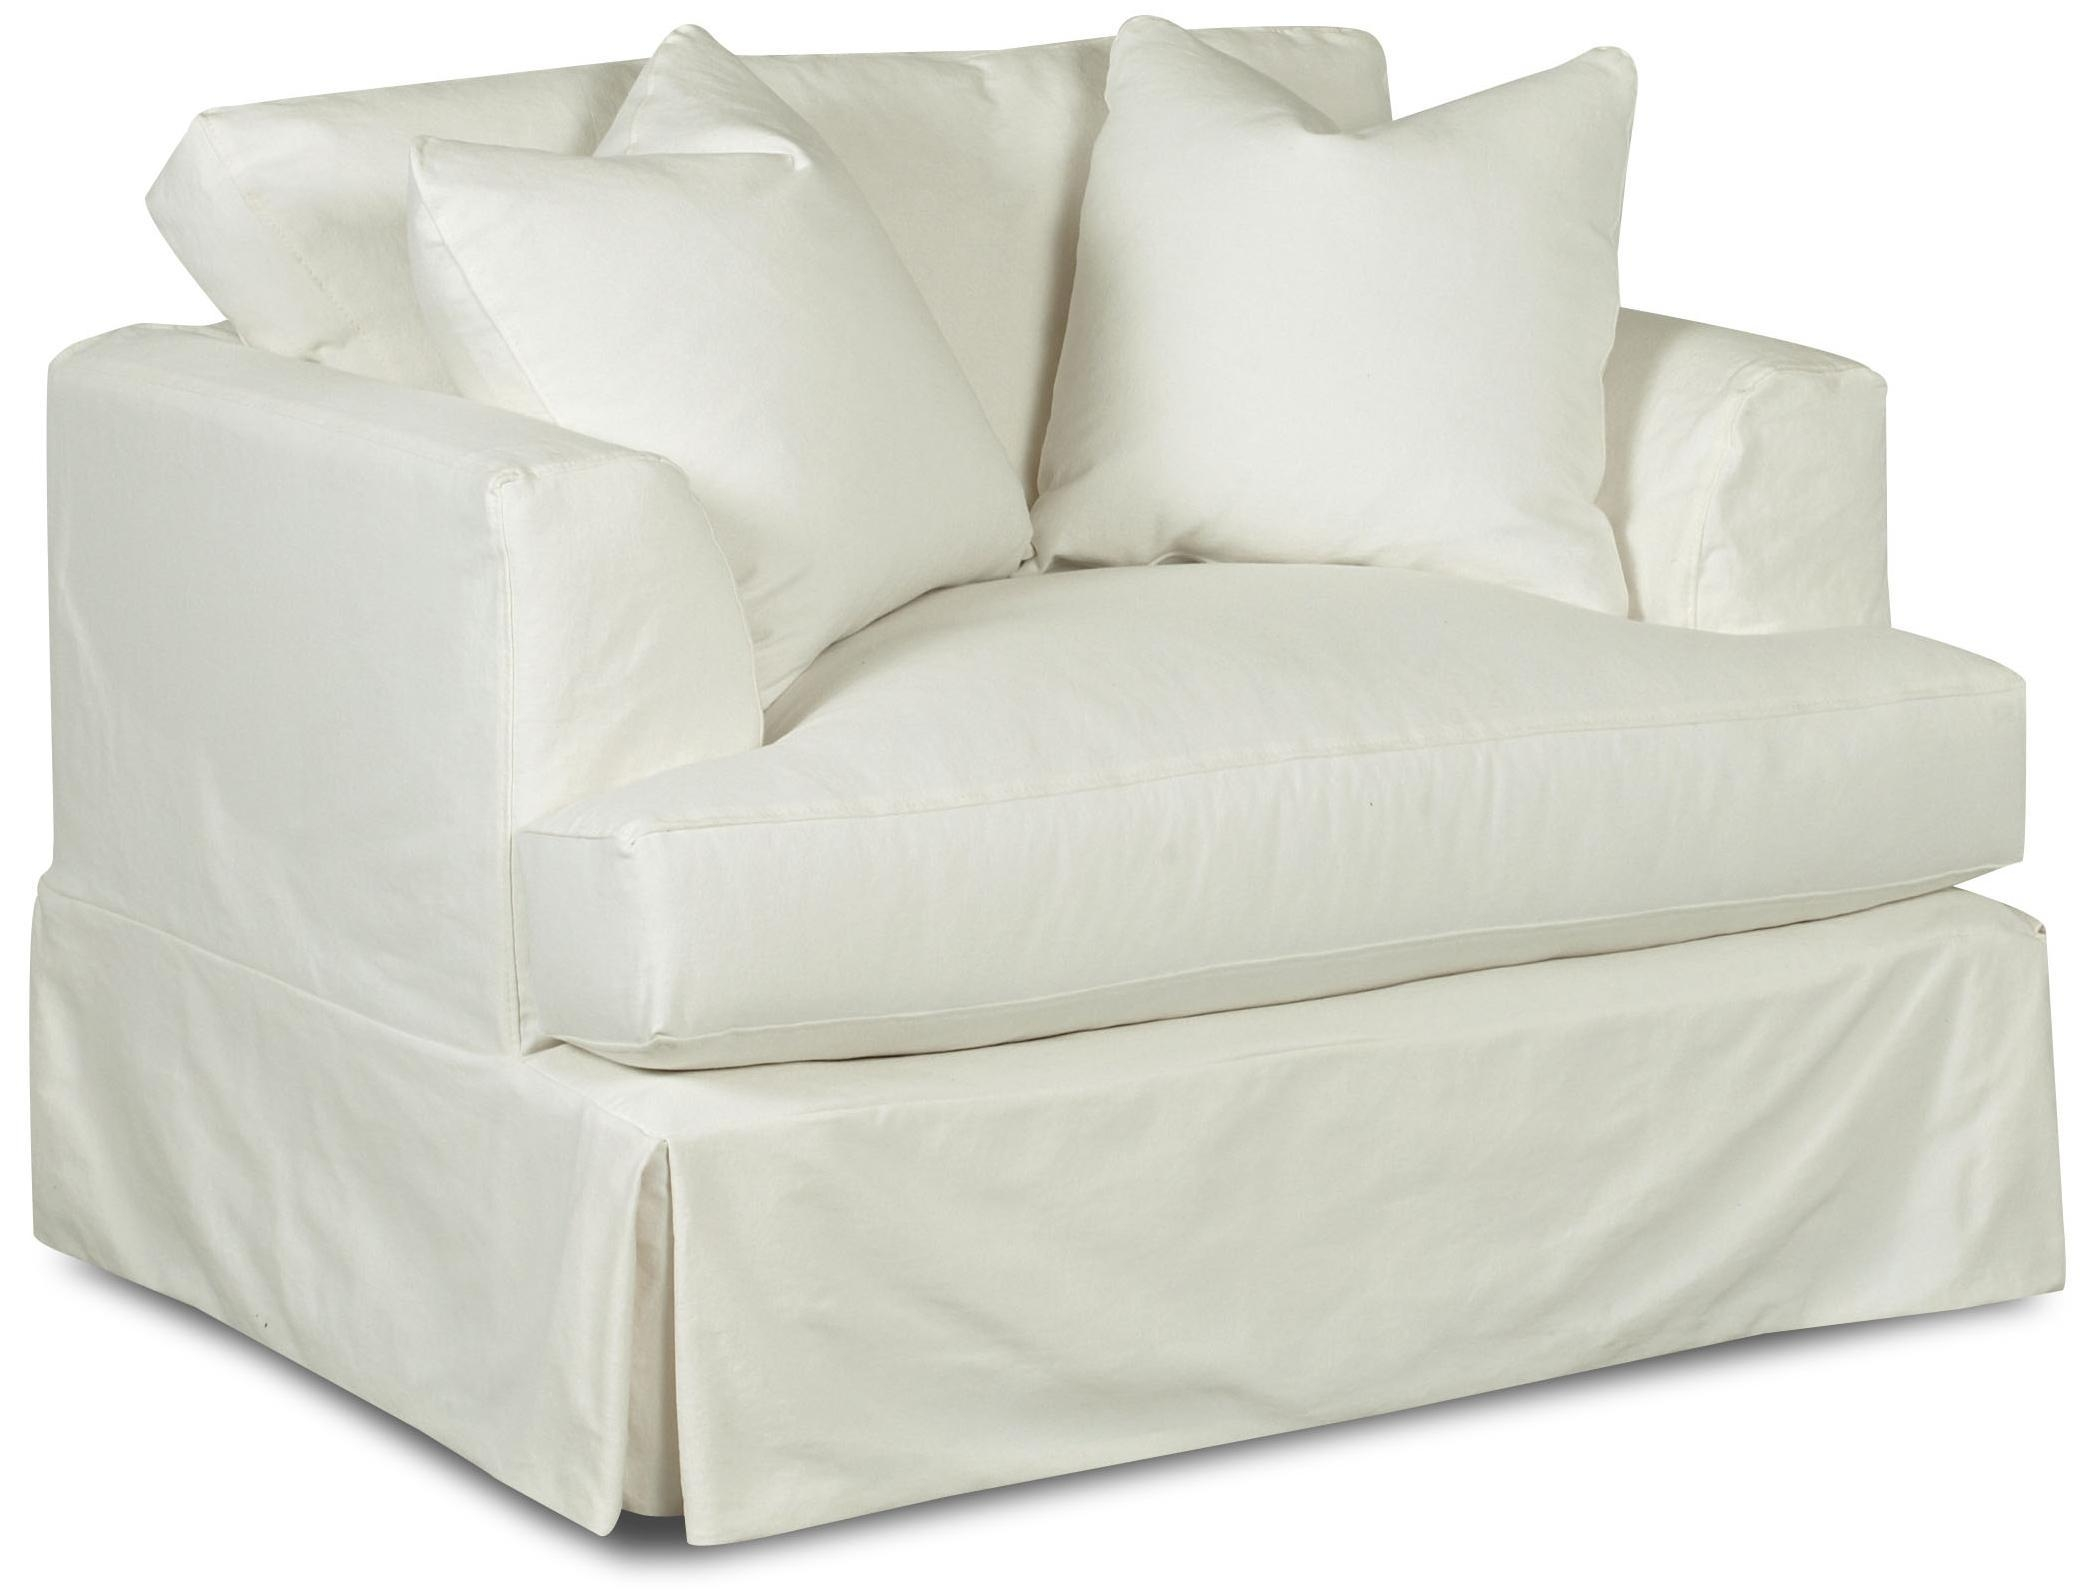 slipcovers for overstuffed sofas 20 best overstuffed sofas and chairs sofa ideas